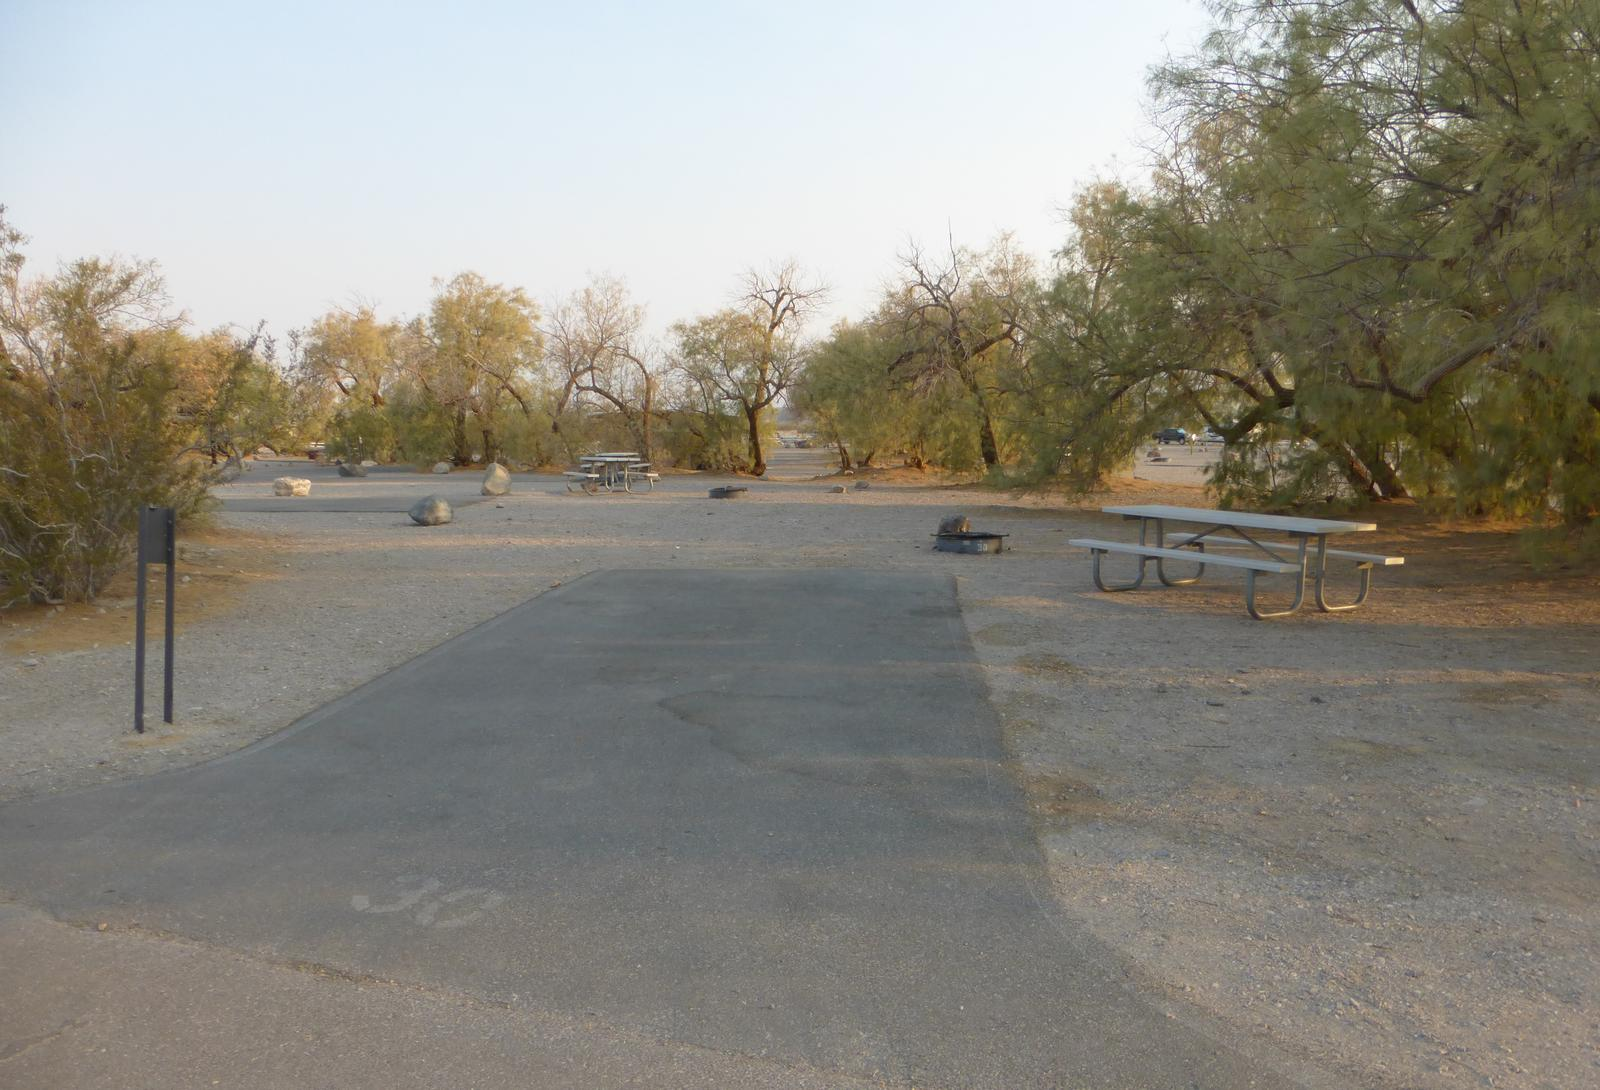 Furnace Creek Campground standard nonelectric site #30 with picnic table and fire ring.